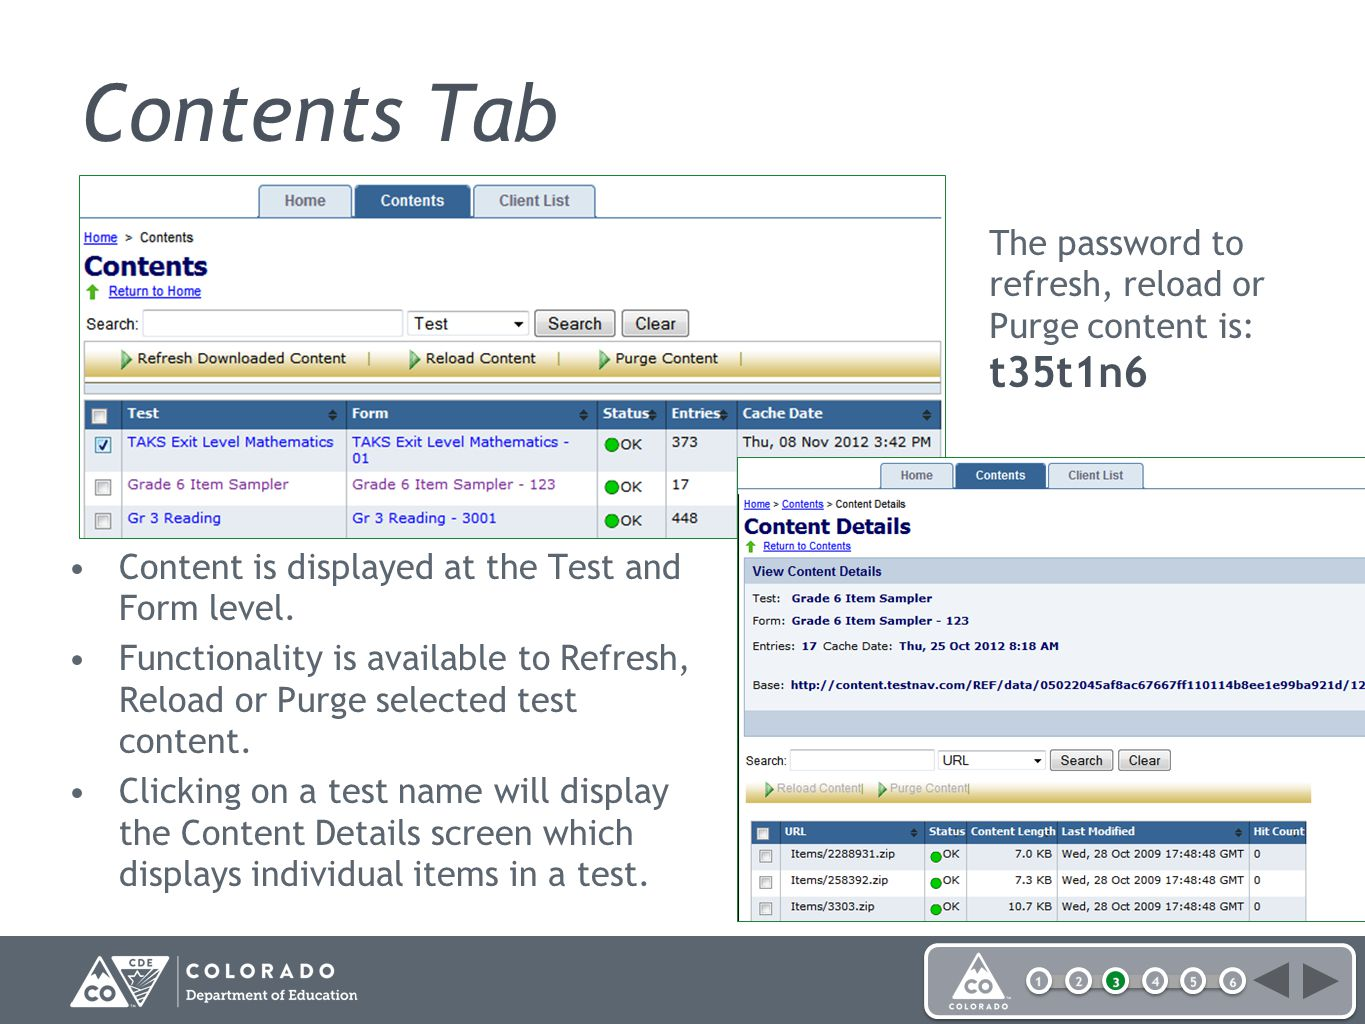 Content is displayed at the Test and Form level.